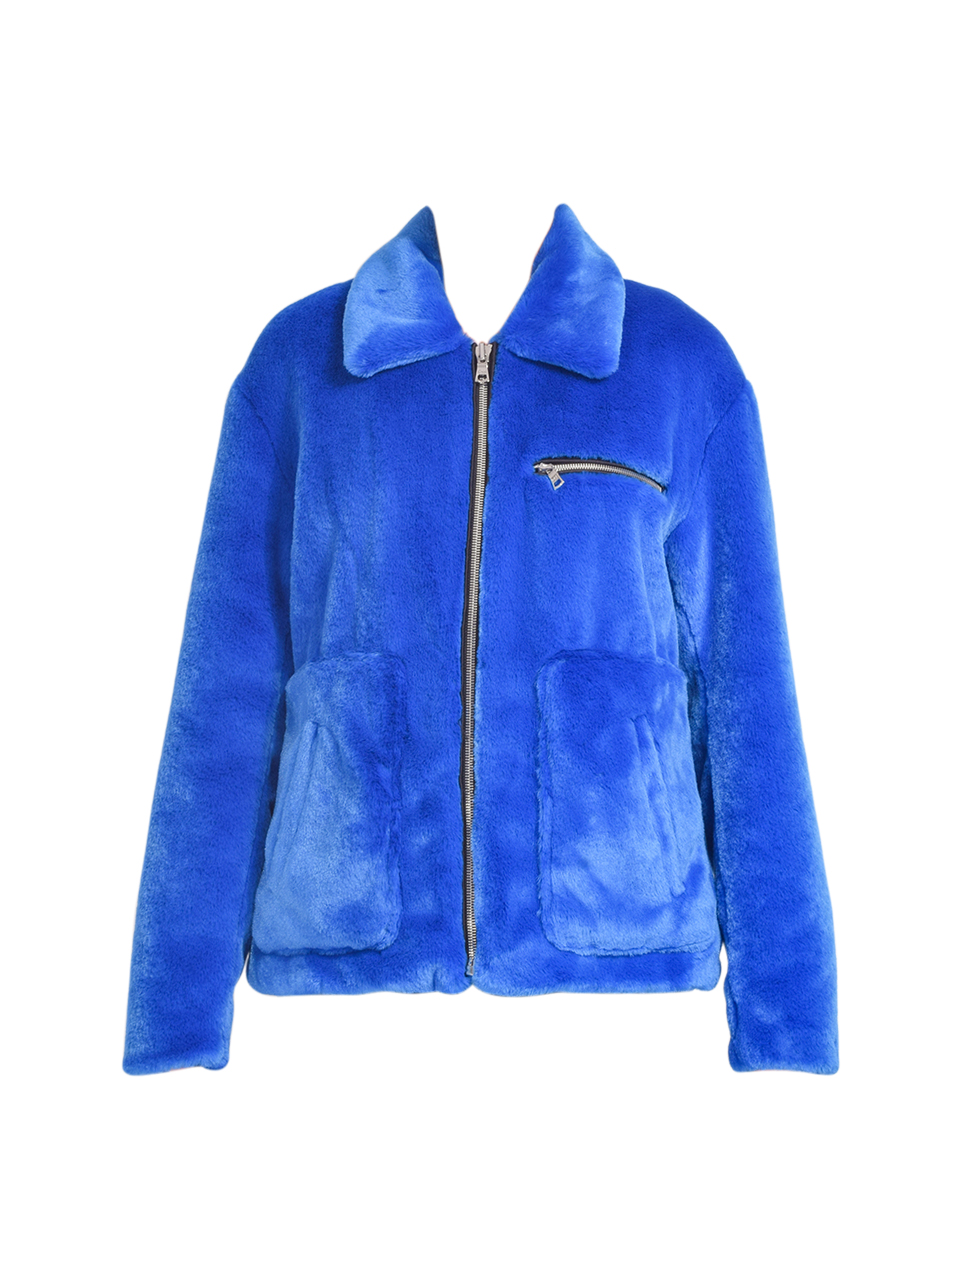 RtA Reese Zip Up Jacket in Magnetic Blue Product Shot